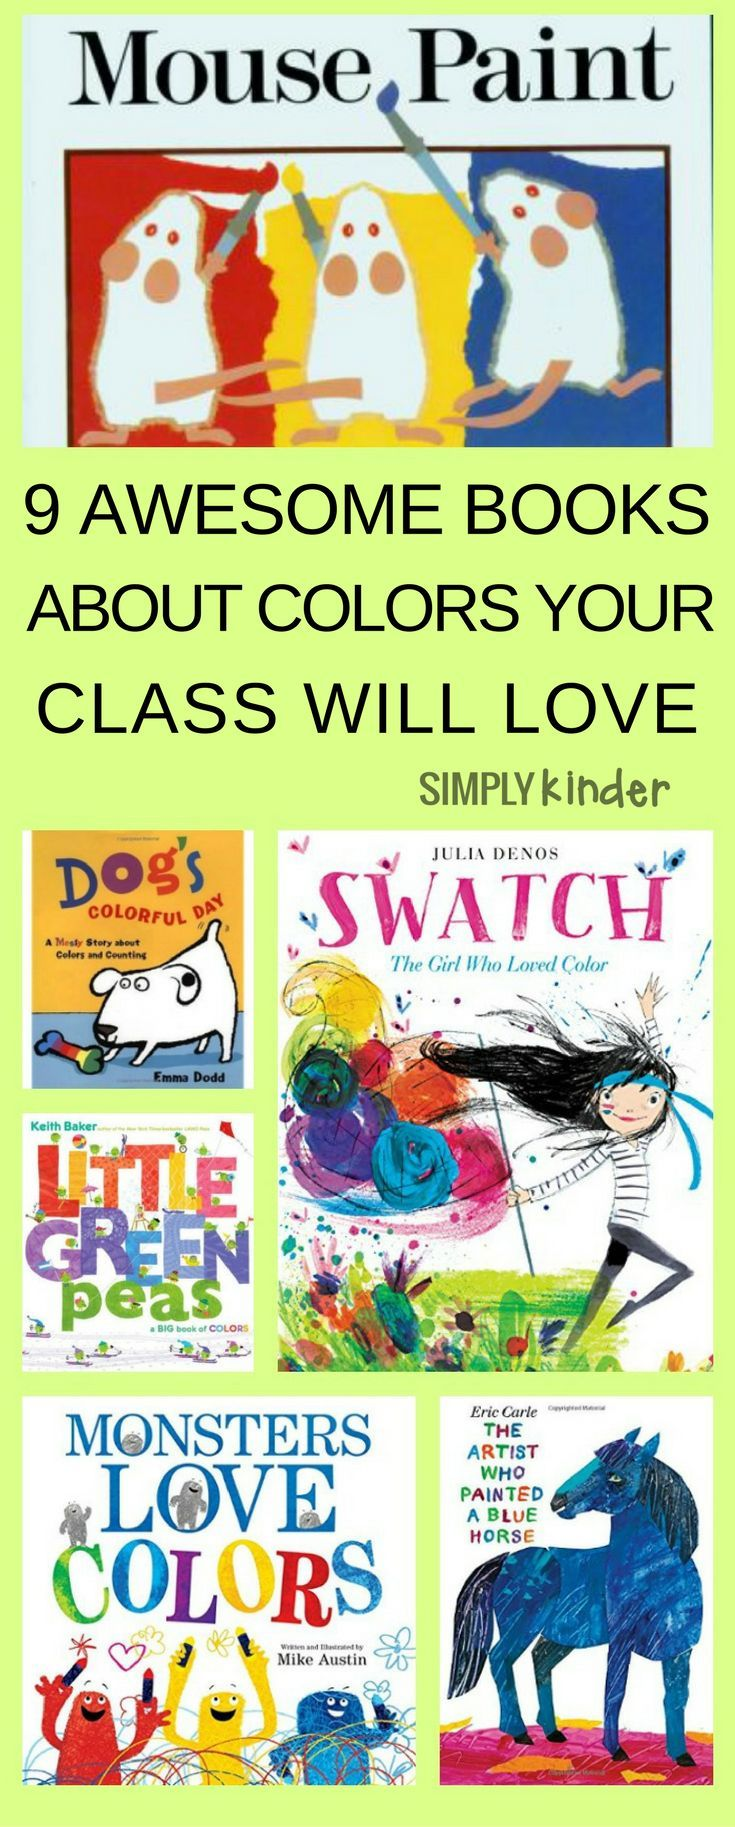 240 best Colors images on Pinterest | Simply kinder, Color ...